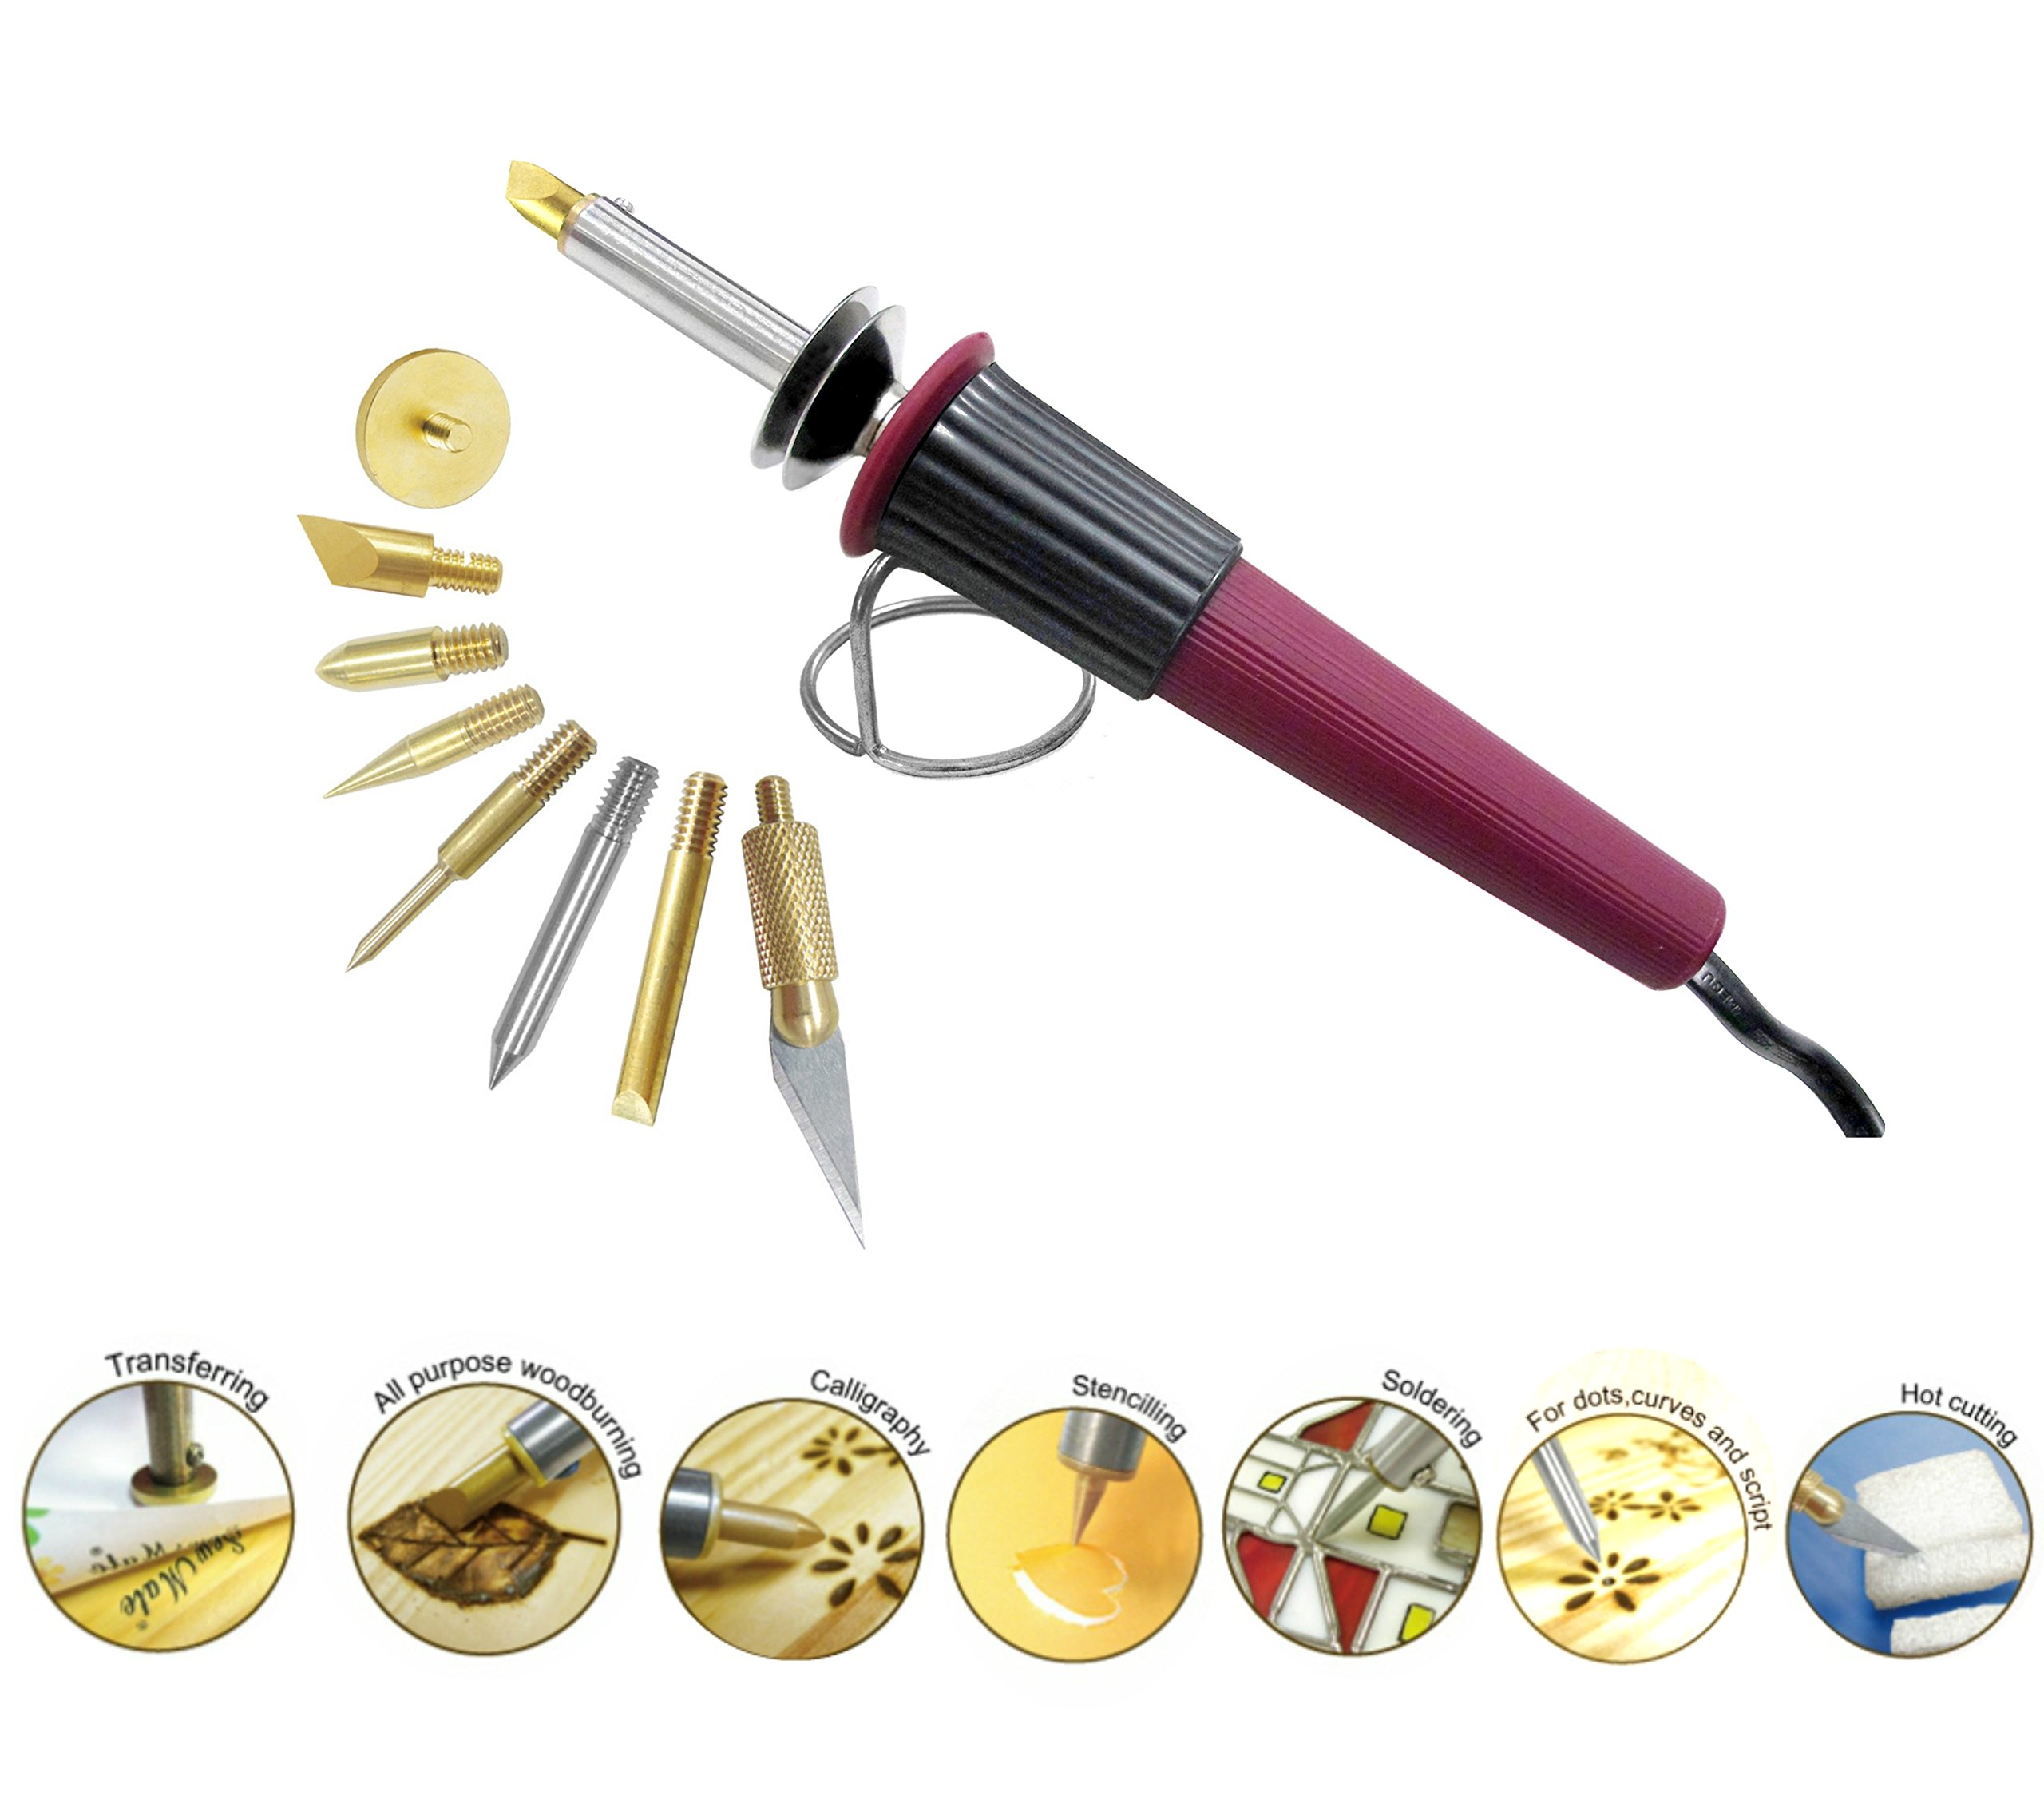 Woodburning Soldering Tool Set 8 Interchangeable Tips All Purpose Leather Paper Crafting Stamping Stencil Hot Knife Cutting